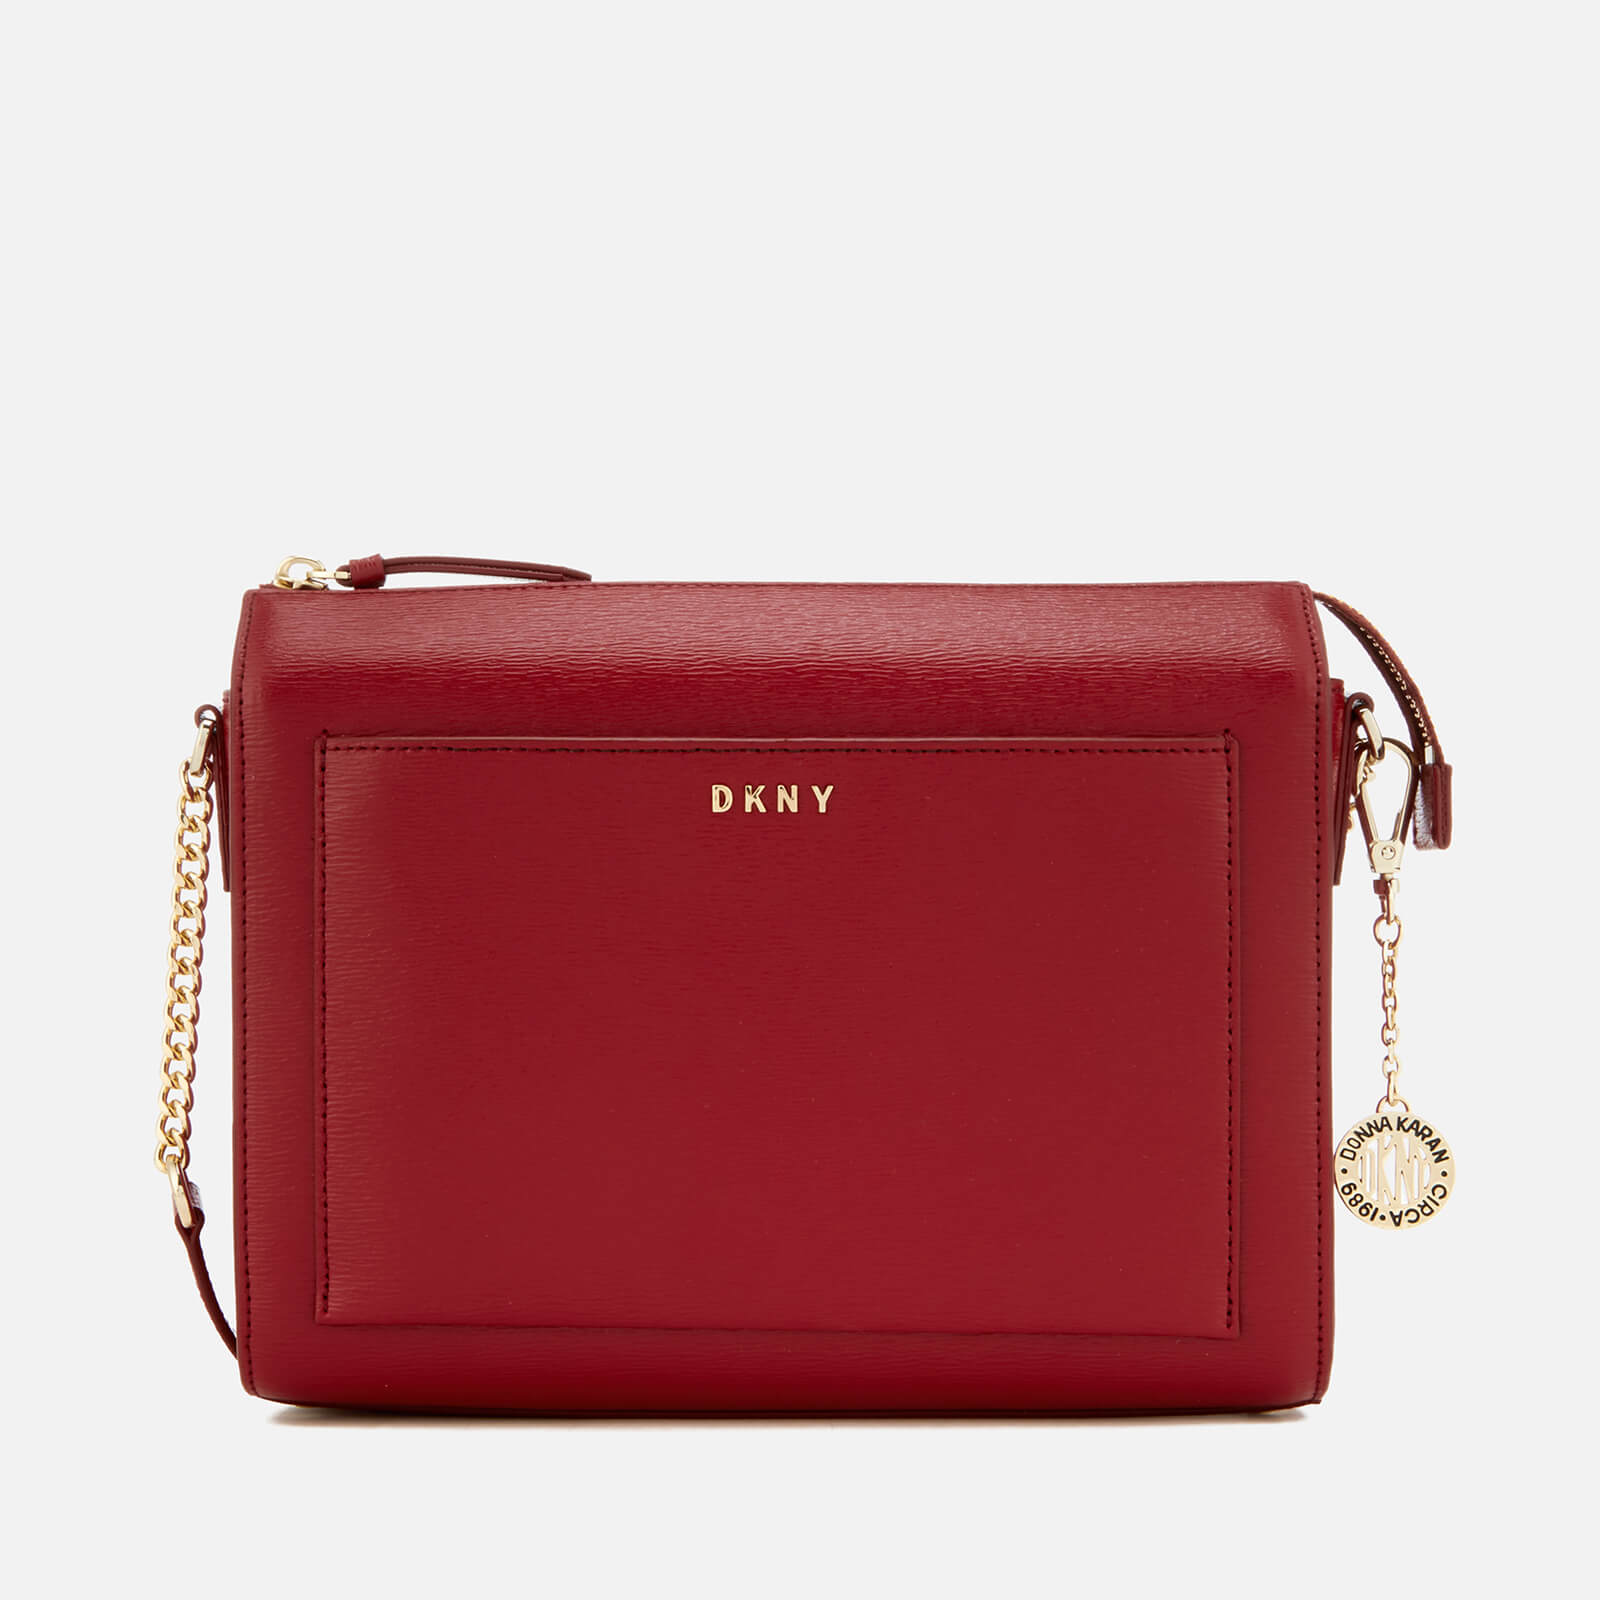 58db98f59d0a DKNY Women s Sutton Medium Box Cross Body Bag - Scarlet Red - Free UK  Delivery over £50